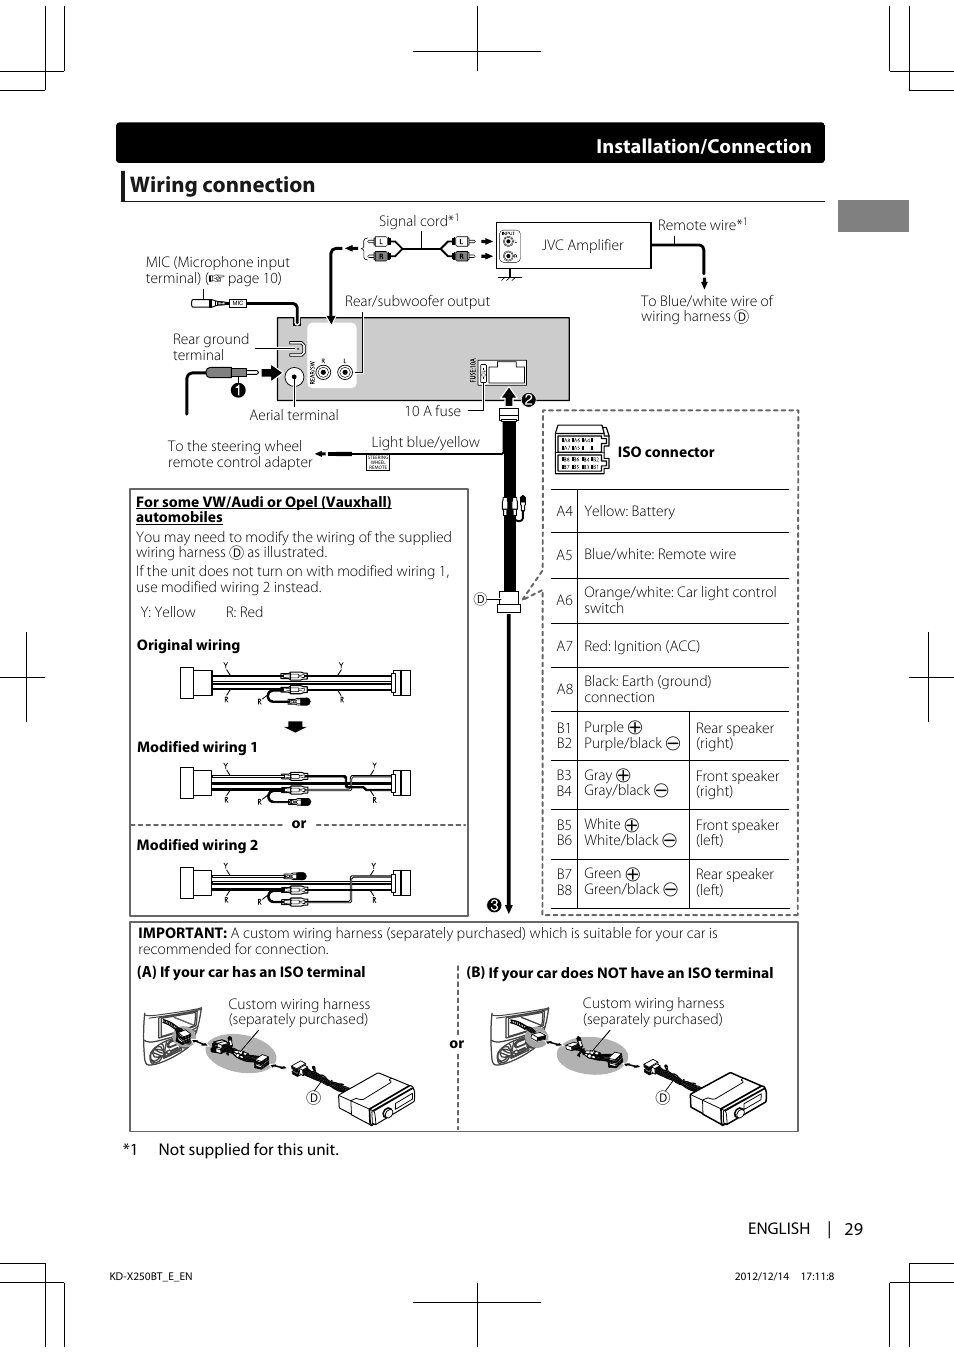 hight resolution of jvc kd x250bt wiring diagram wiring librarywiring connection installation connection jvc kd x250bt